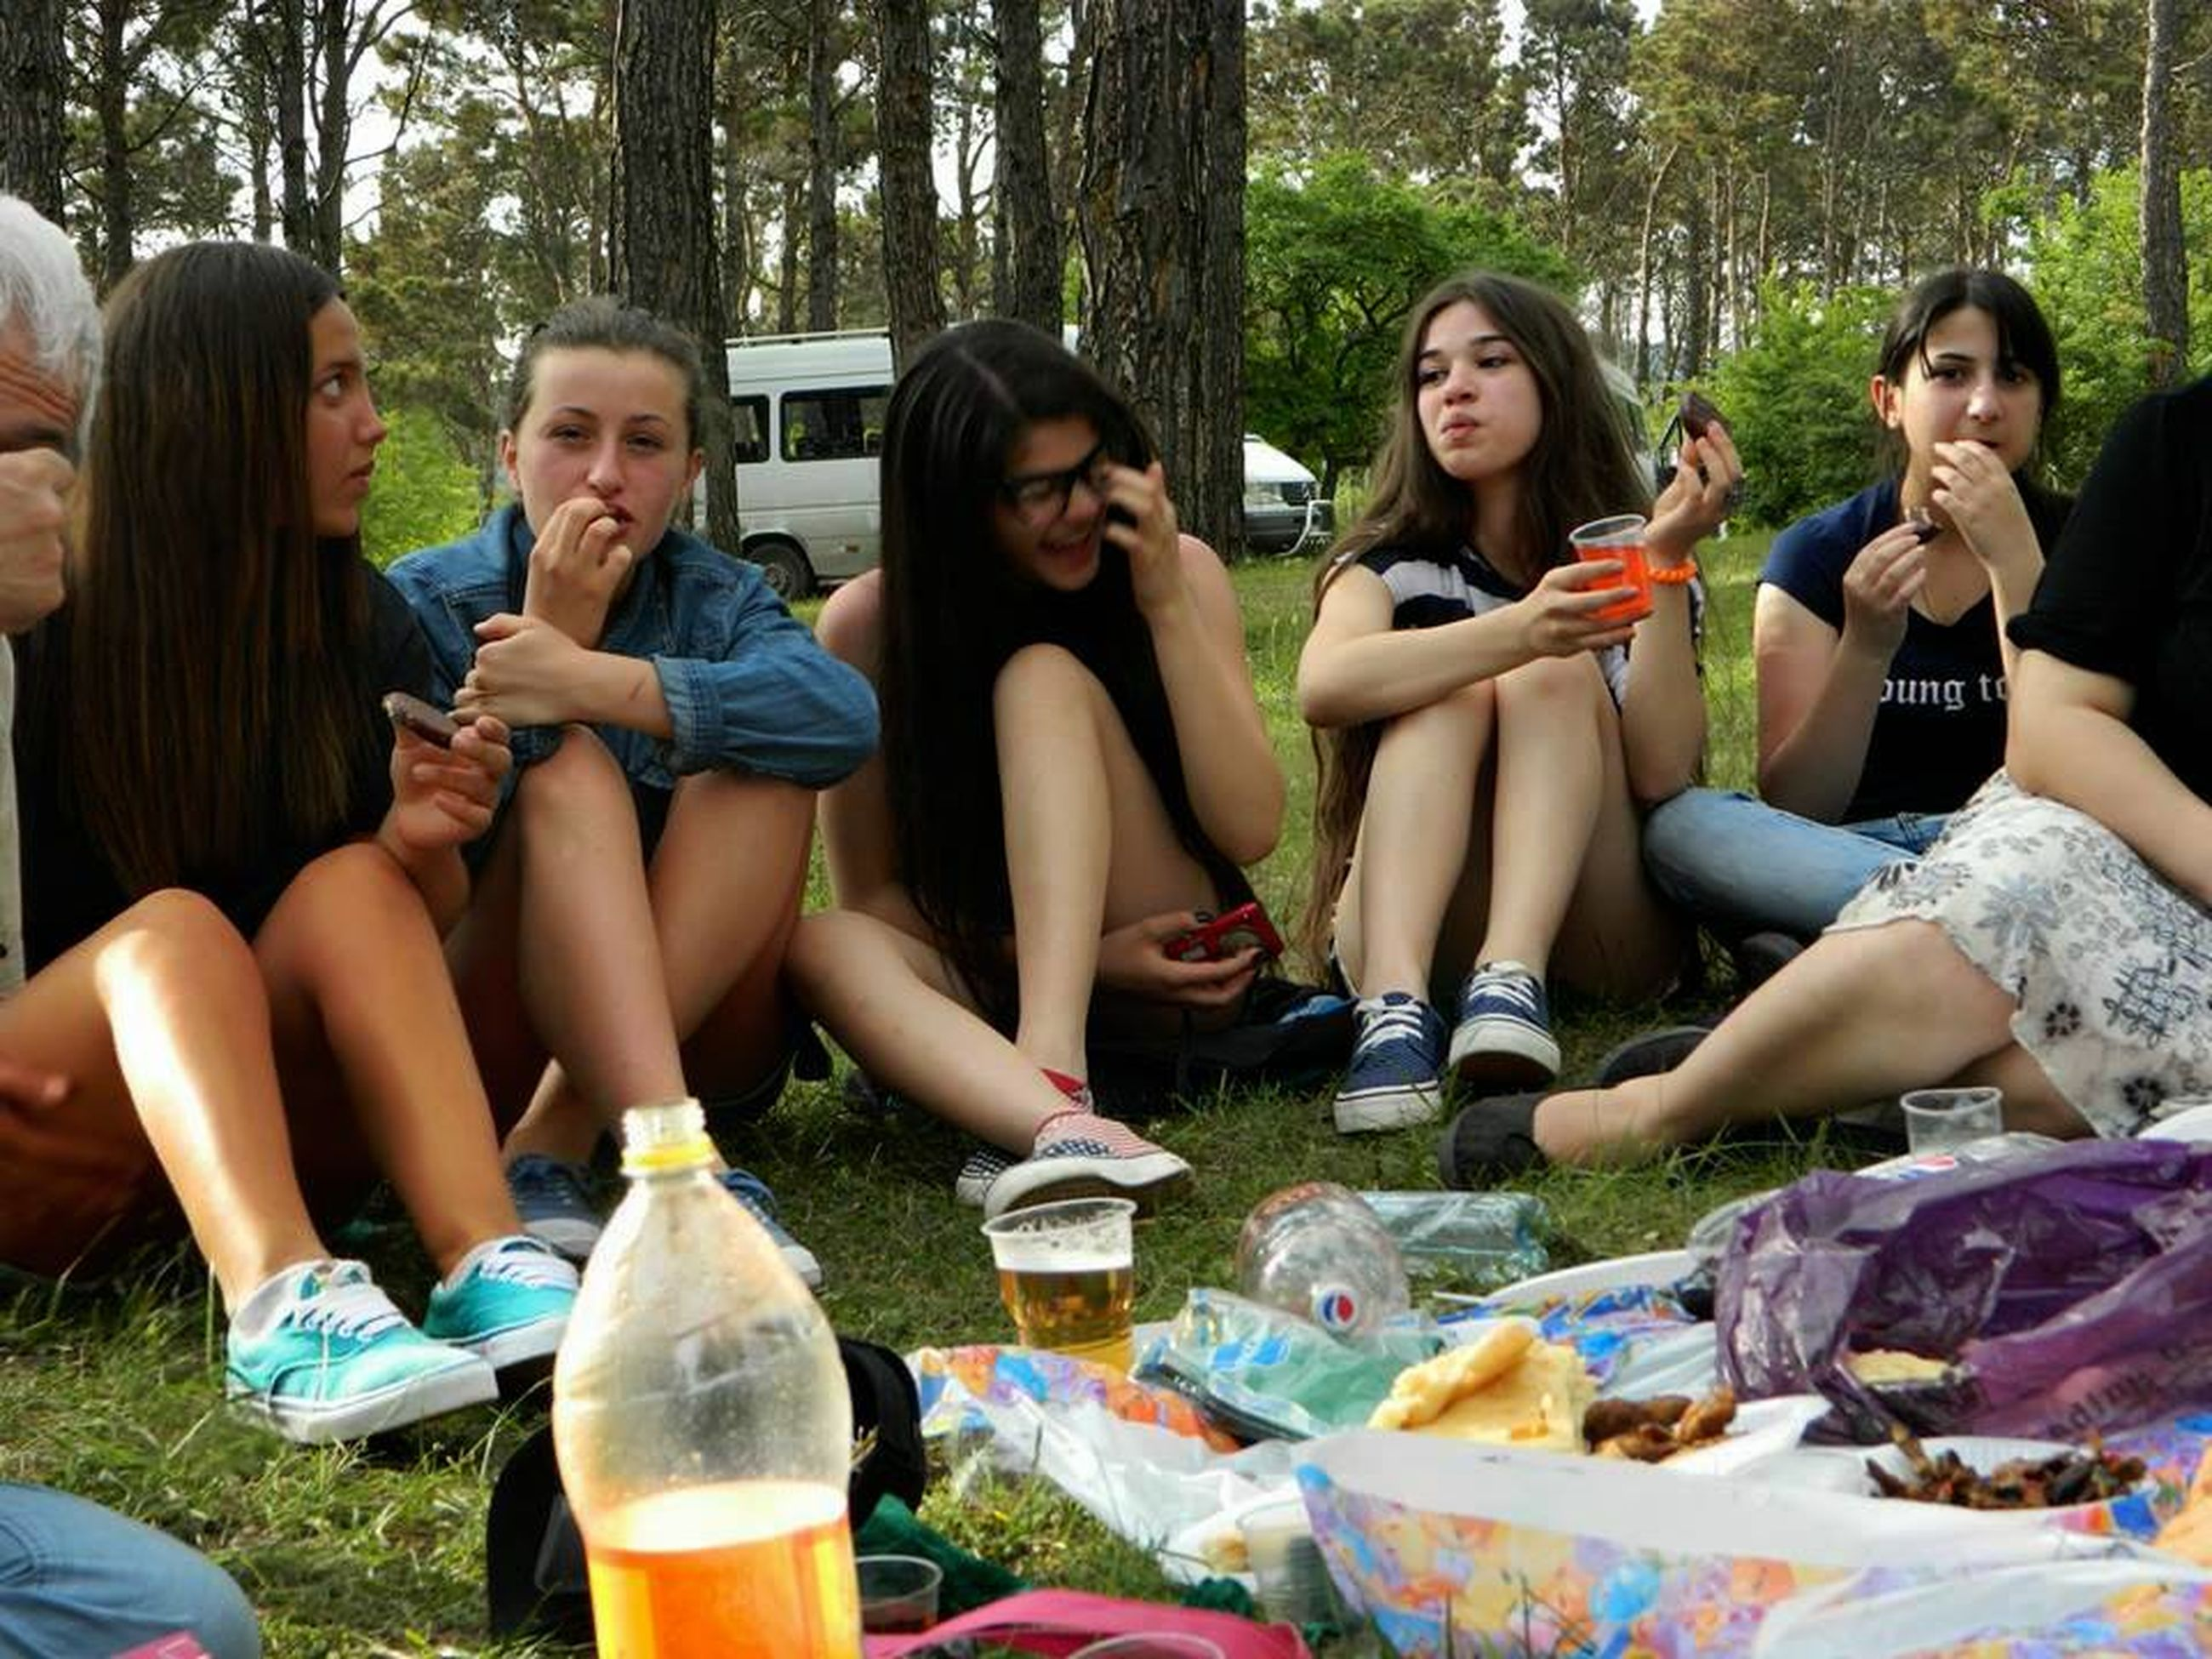 togetherness, lifestyles, bonding, leisure activity, friendship, young adult, person, casual clothing, happiness, smiling, love, young women, sitting, portrait, looking at camera, enjoyment, front view